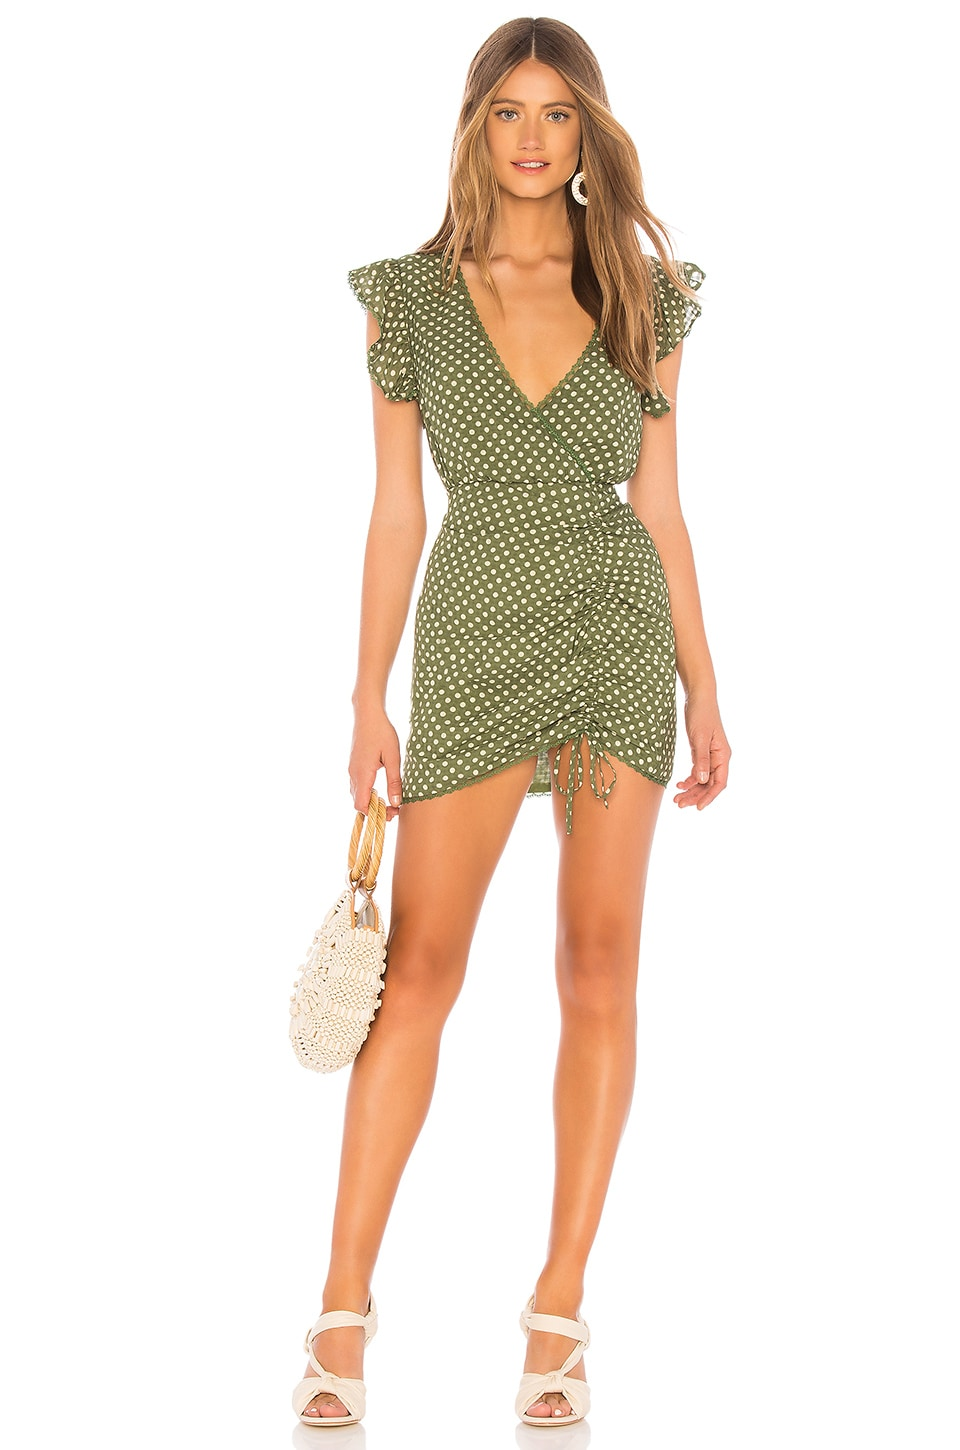 Tularosa Huntington Dress in Mint Green